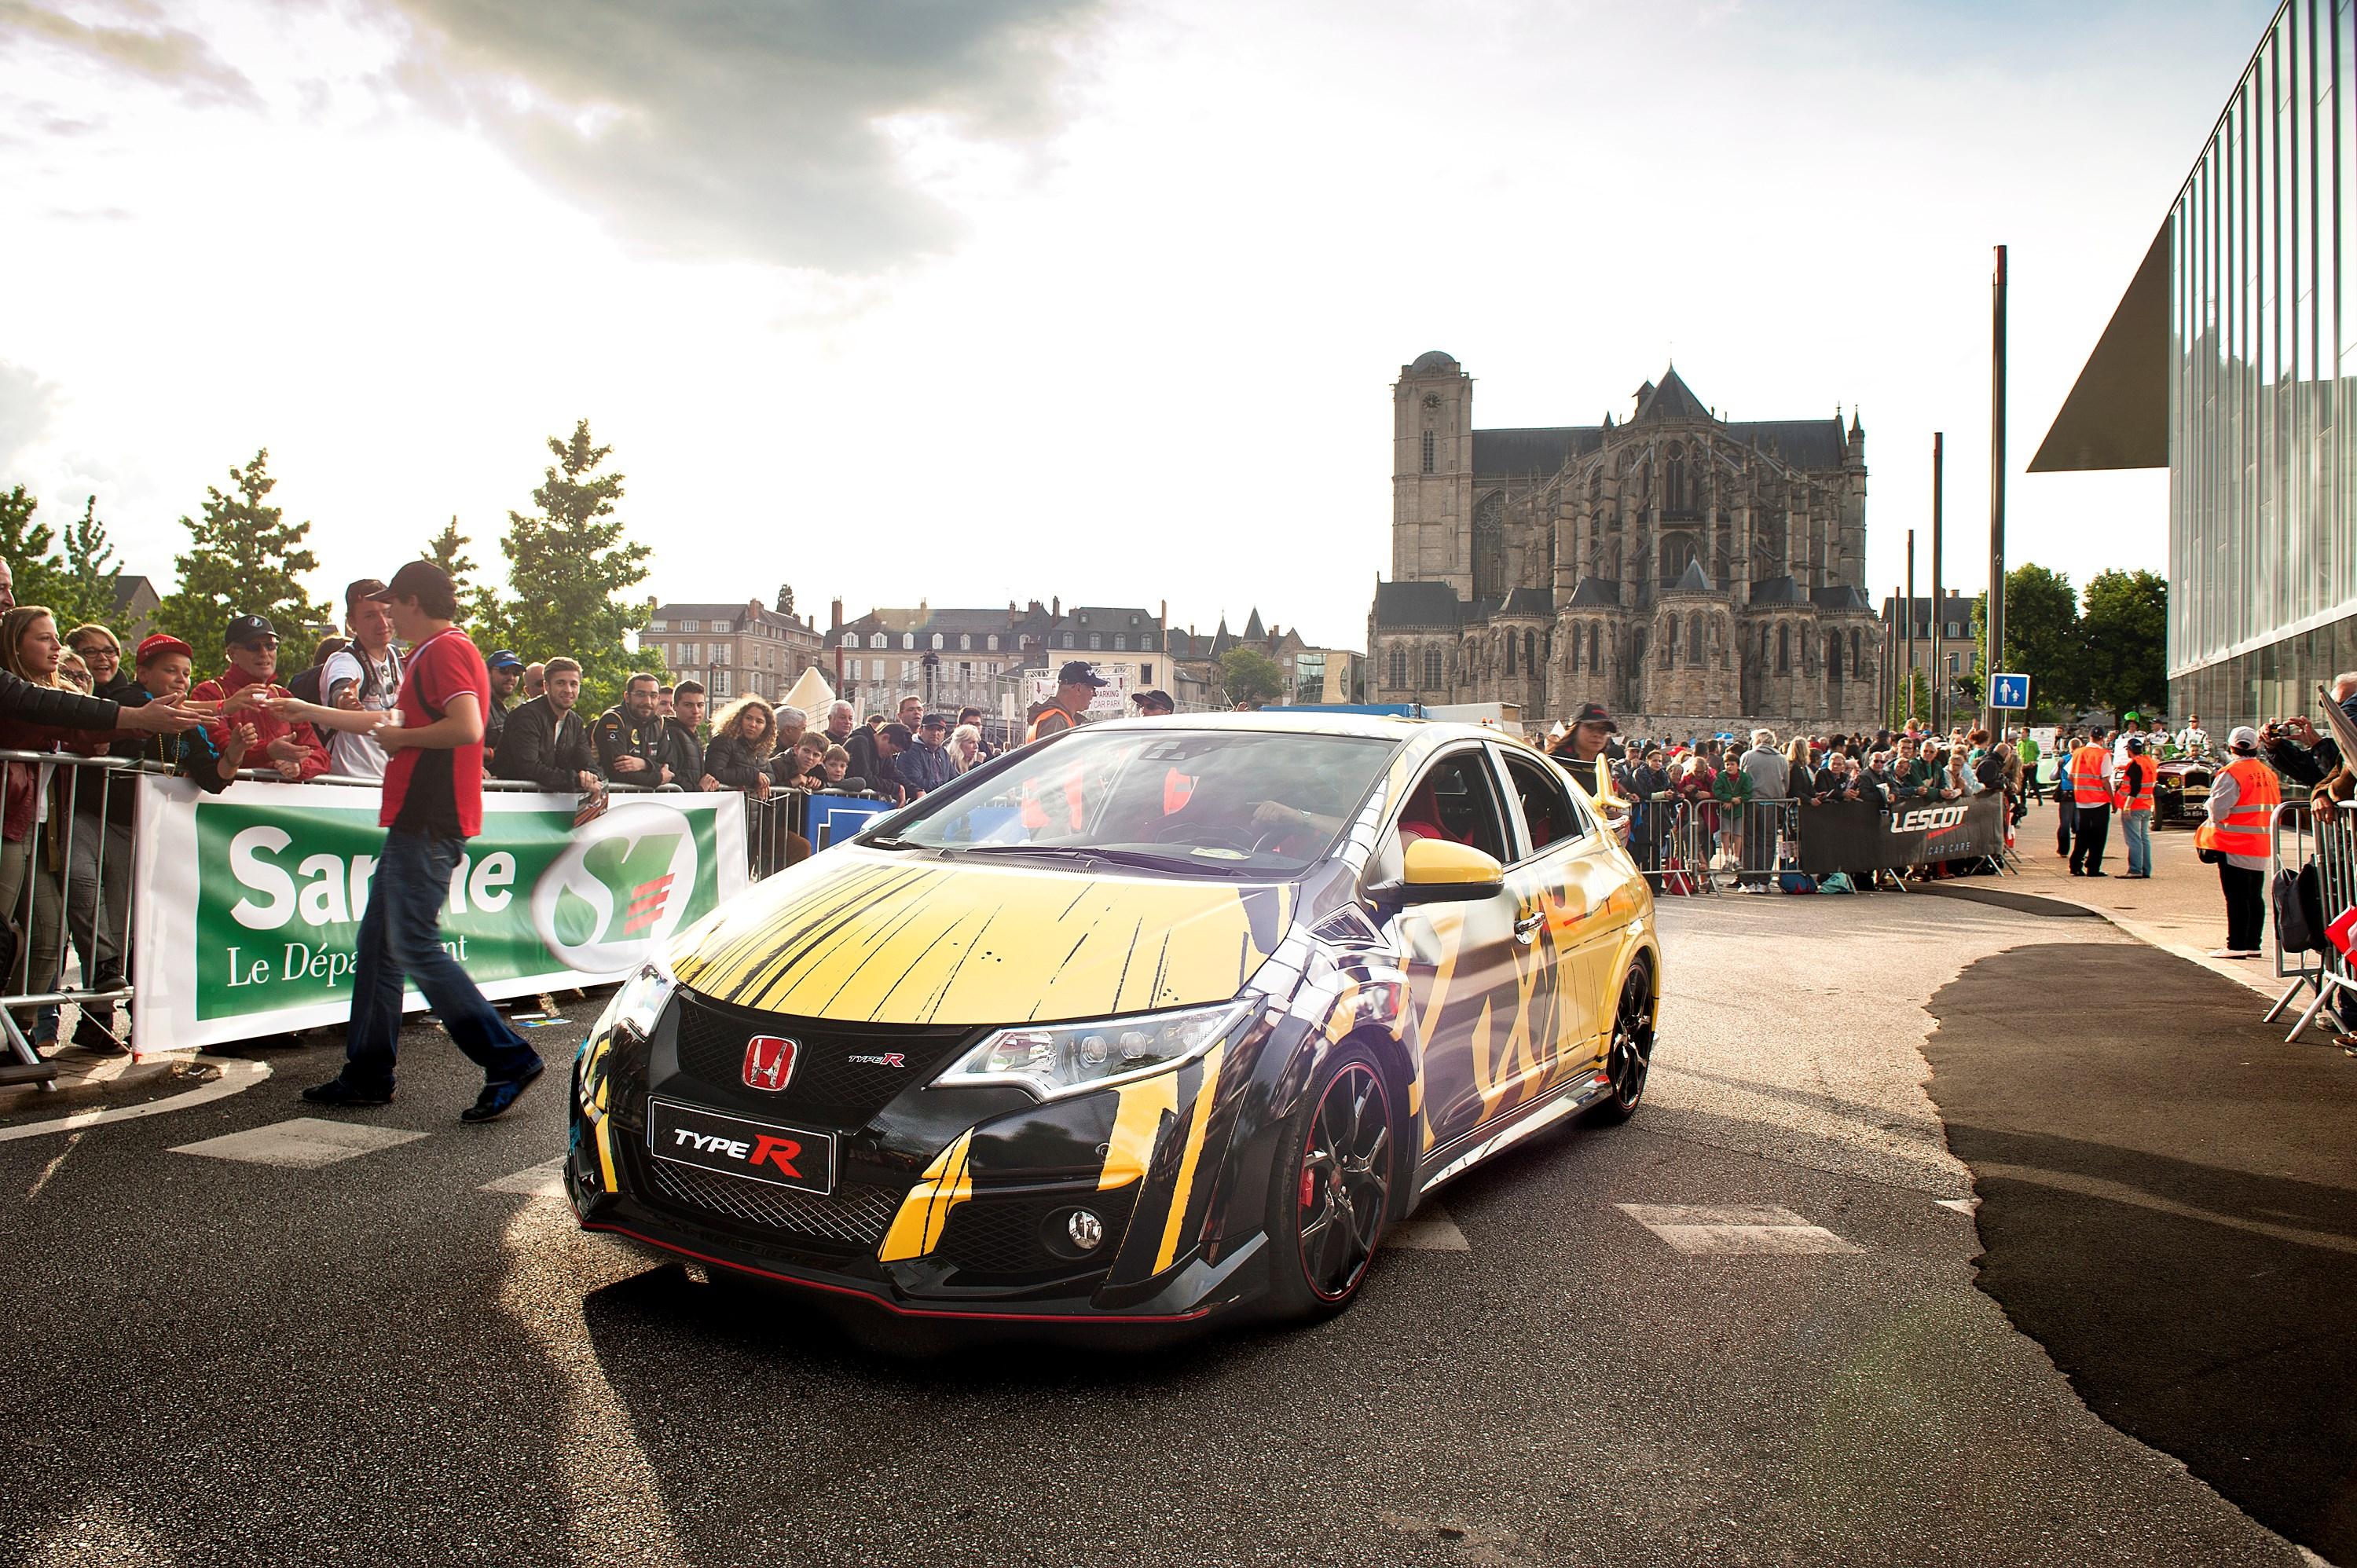 Honda Civic WTCC Art Car - 24 Heures du Mans 2016 - parade - photo via Honda